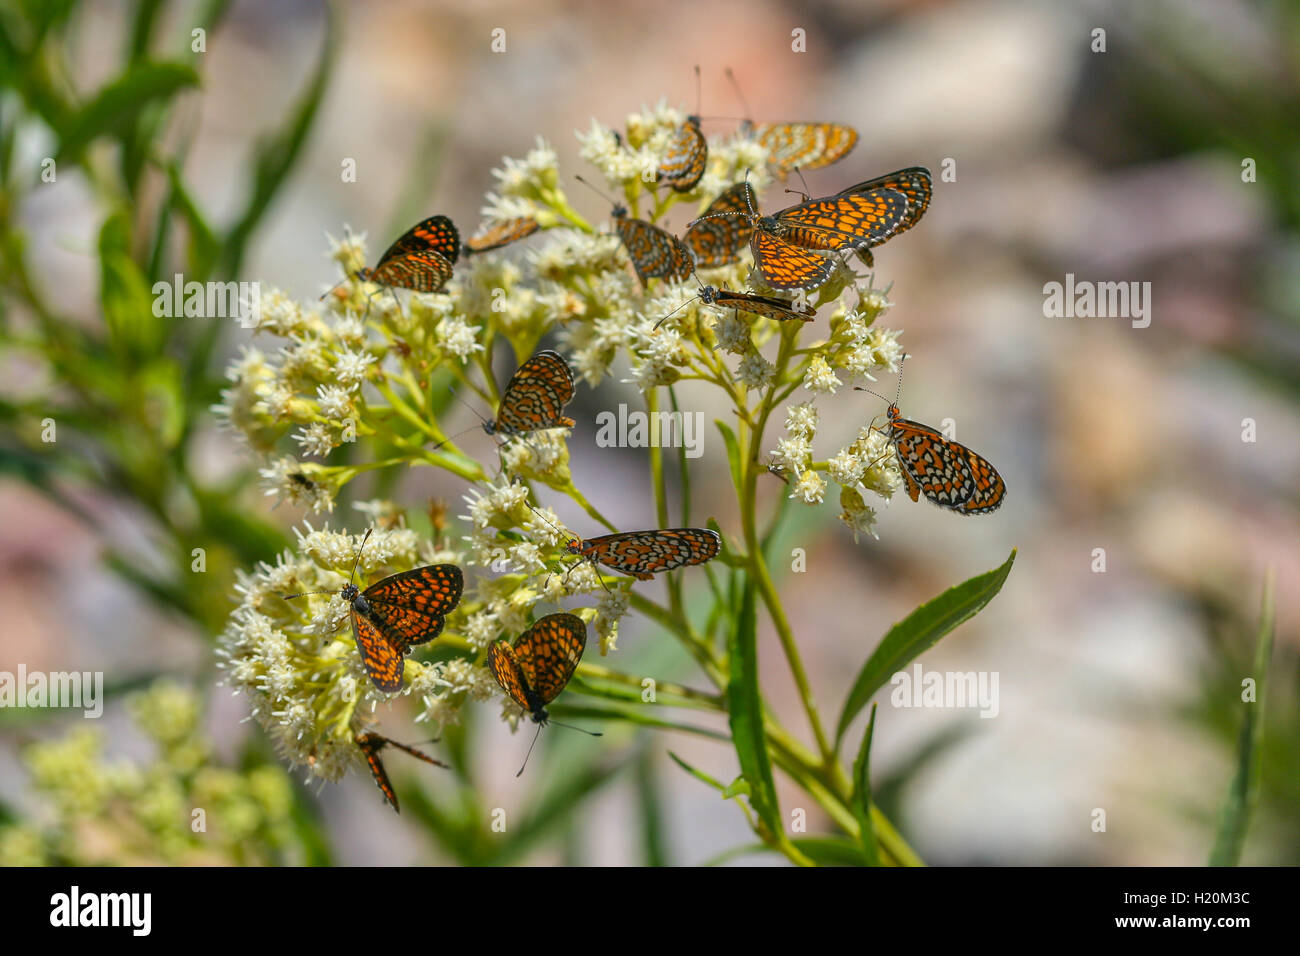 A group of Tiny Checkerspot butterflies (Dymasia dymas) nectaring on white flowers, Arizona, United States - Stock Image